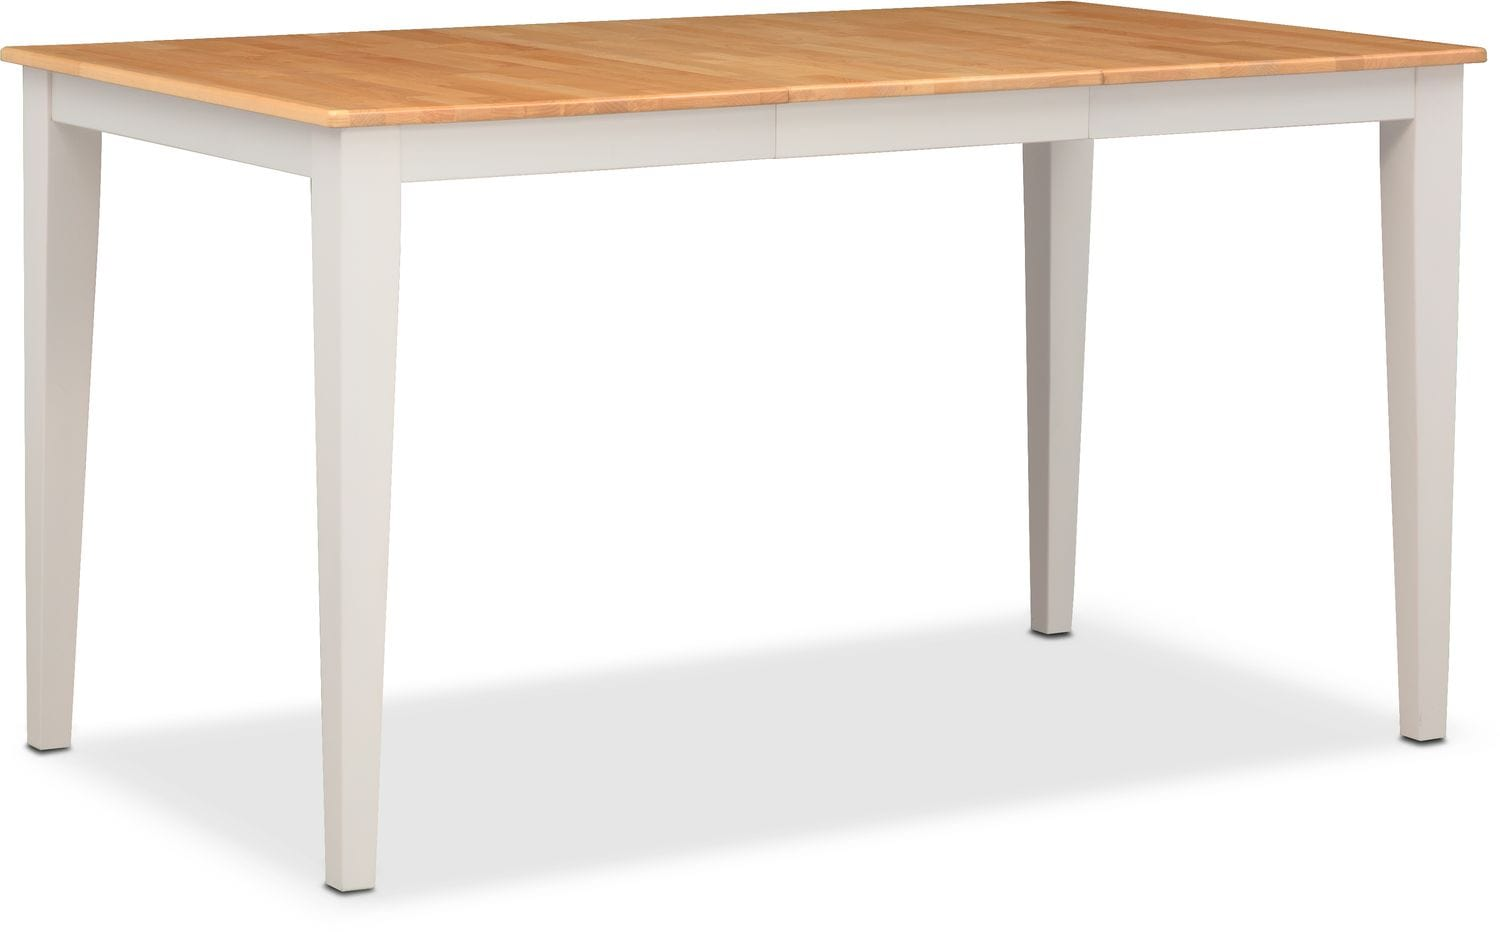 Nantucket Counter-Height Table - Maple and White